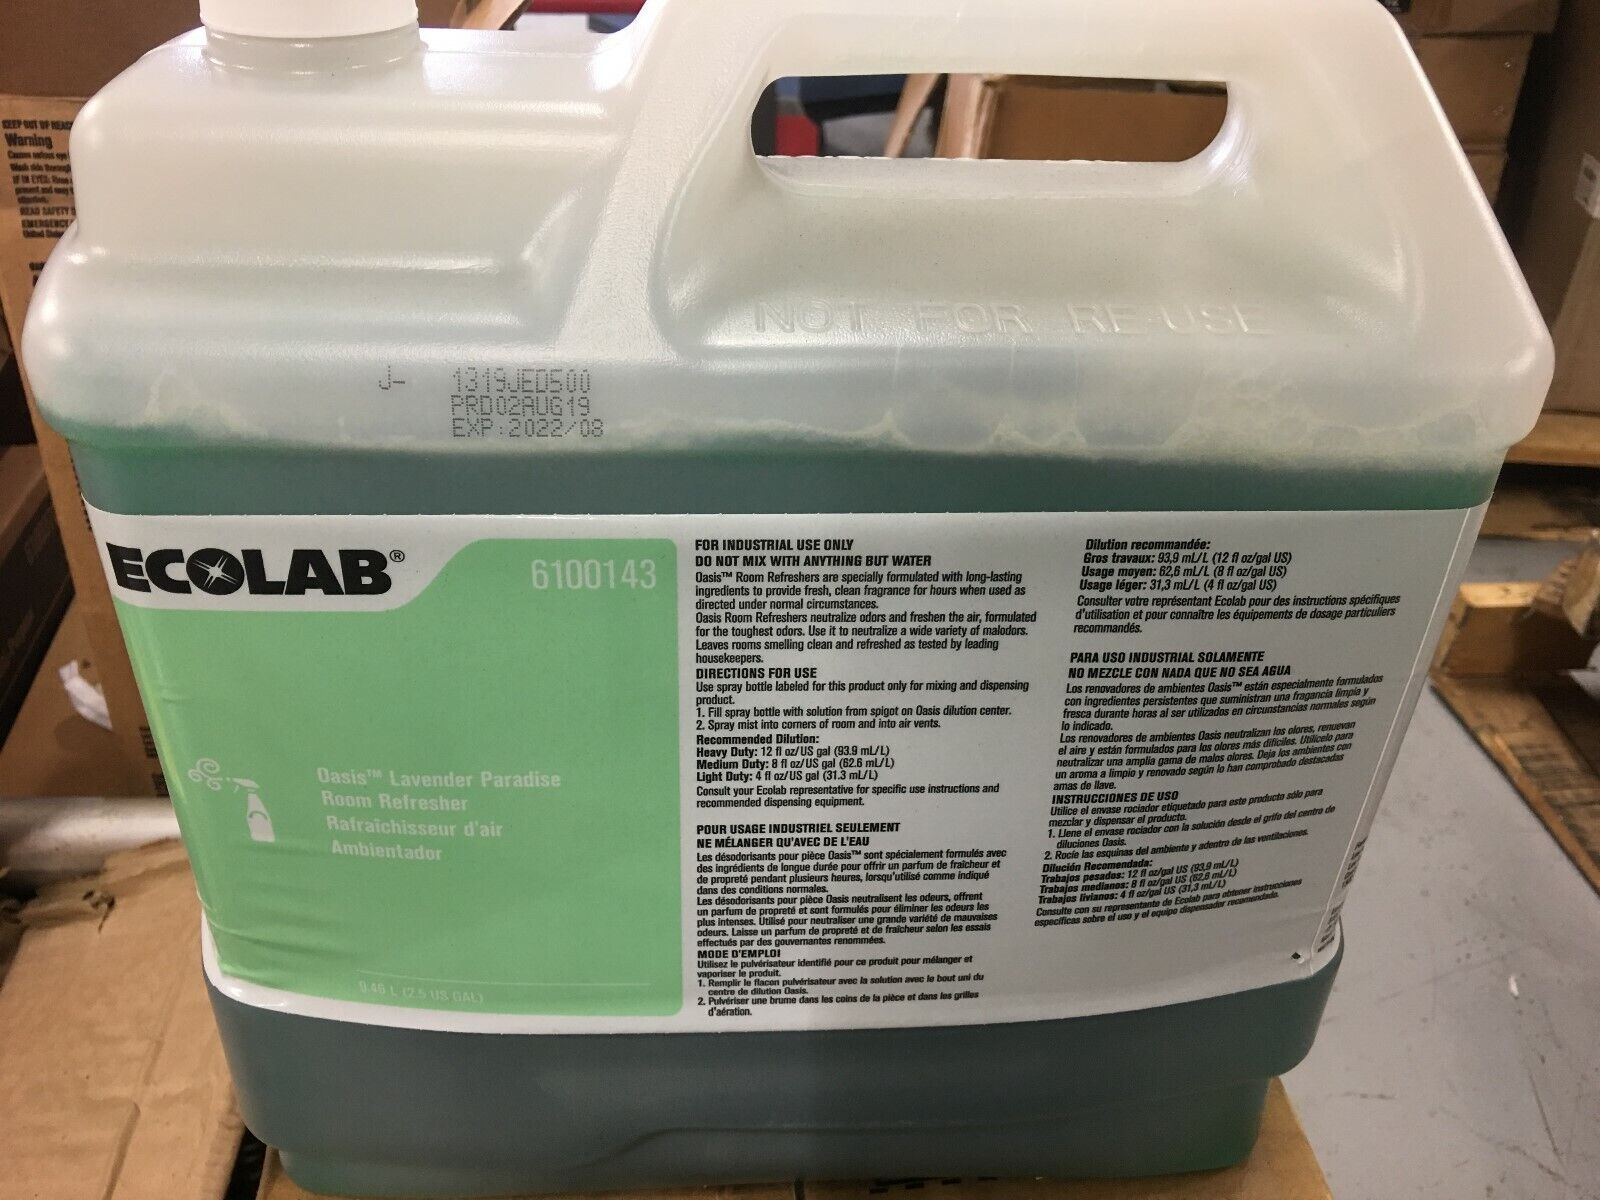 Ecolab 6100143 Oasis Lavender Paradise Room Refresher Air Deodorizer- 2.5 Gallon - $179.99